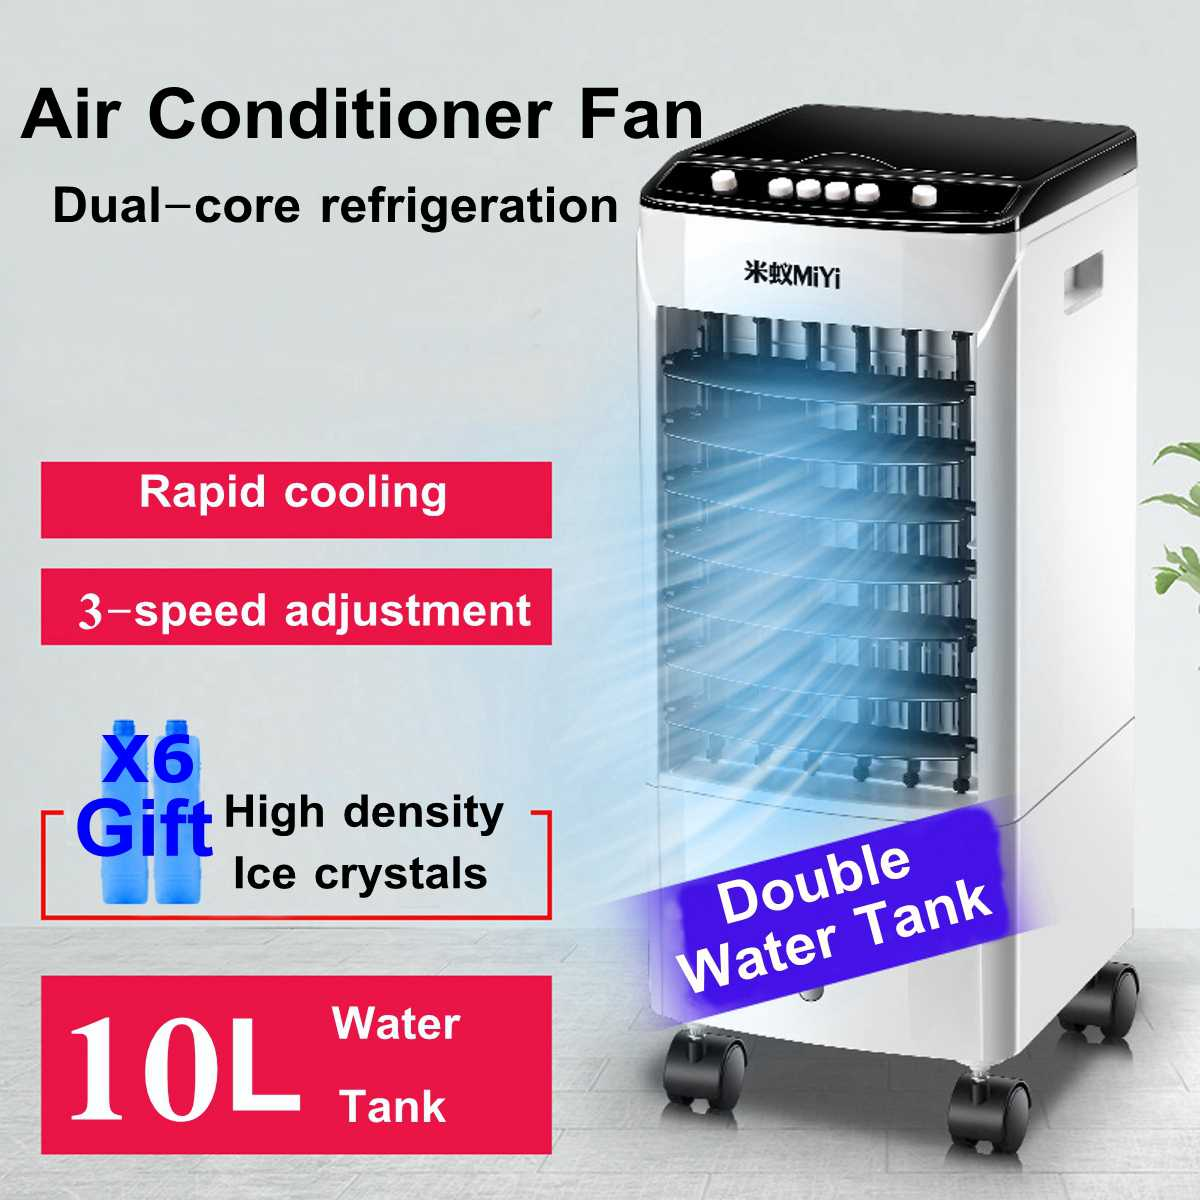 10L 40W Portable Air Conditioner Cooler Fan With Ice Crystal 220V Dual Water Tank Design Wide Angle Of Wind For Home Office